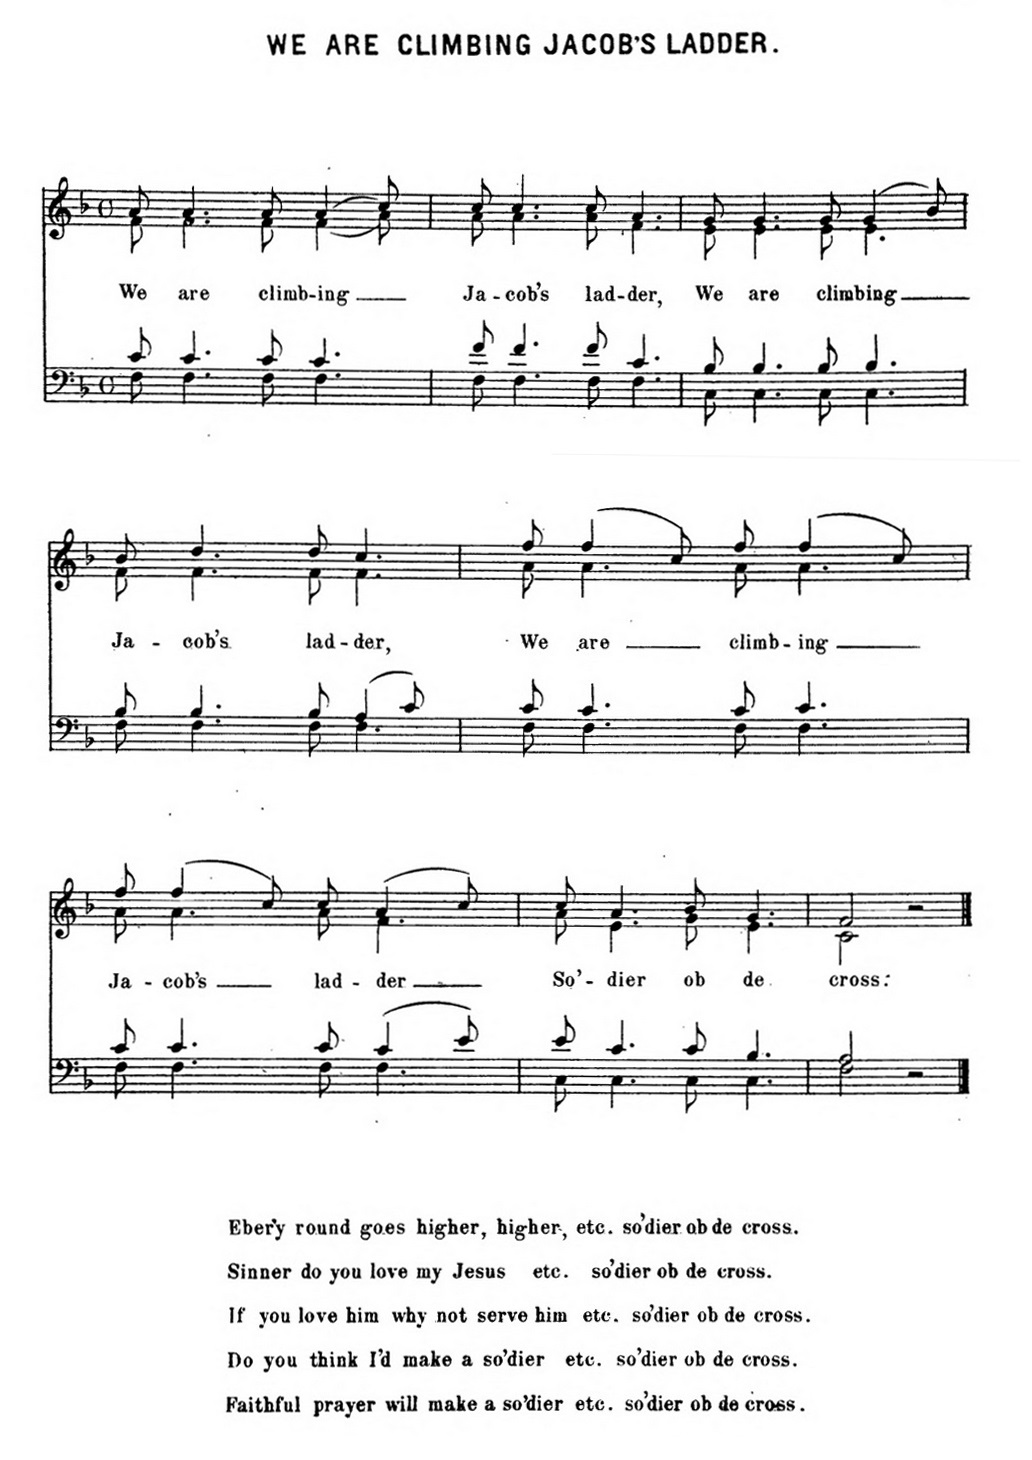 graphic about Free Printable Black Gospel Sheet Music named We Are Rising Jacobs Ladder - Wikipedia